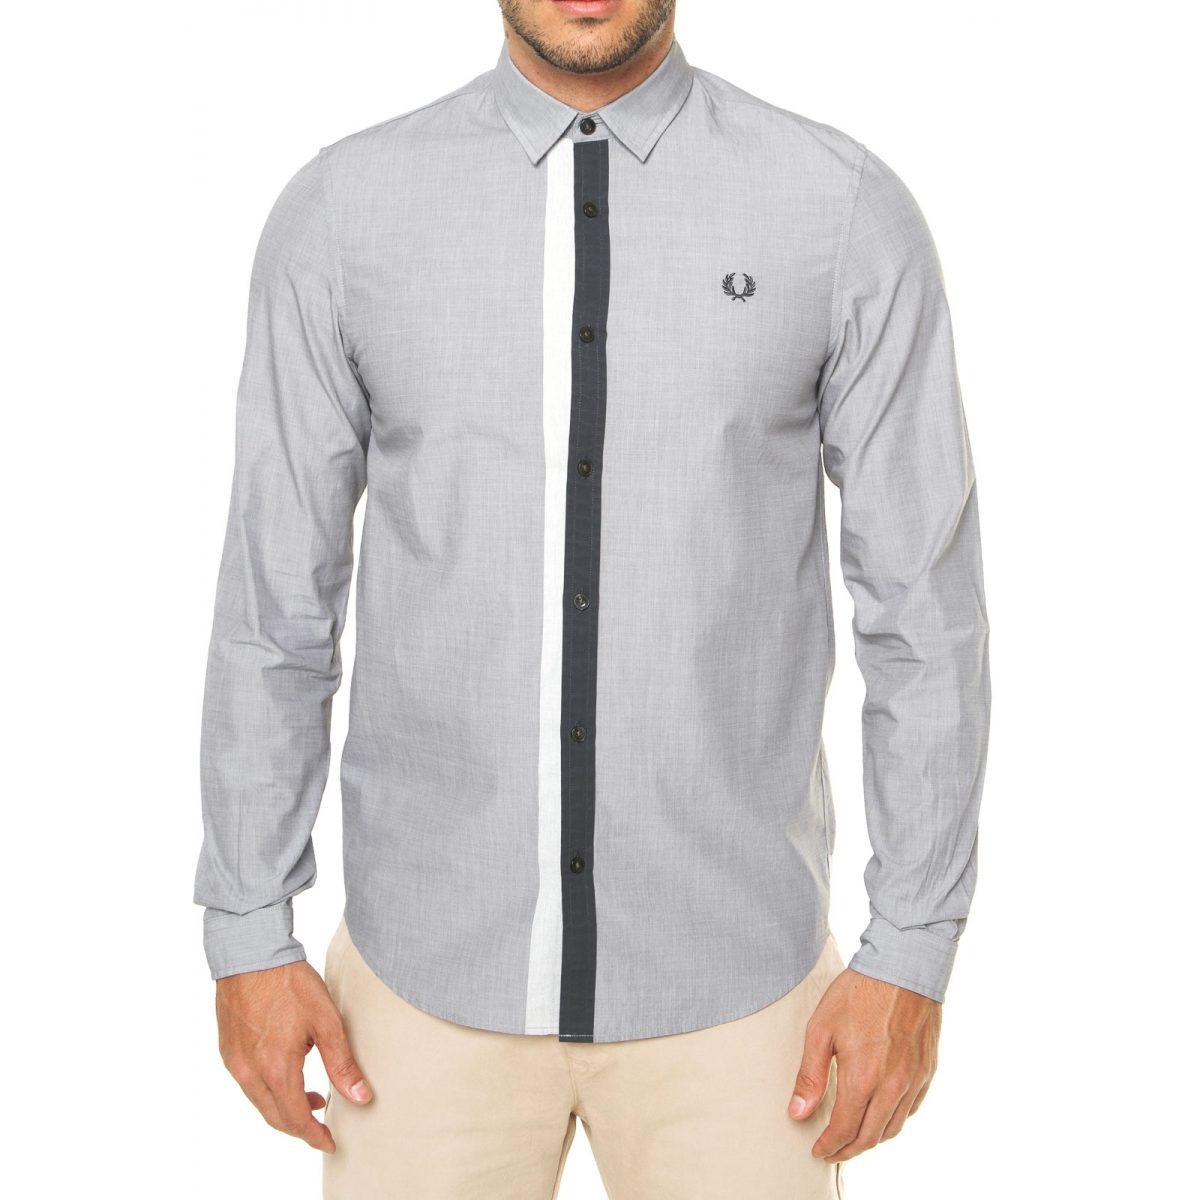 Fred Perry Camisa Fred Perry Placket Cinza 4354 2610961 3 zoom